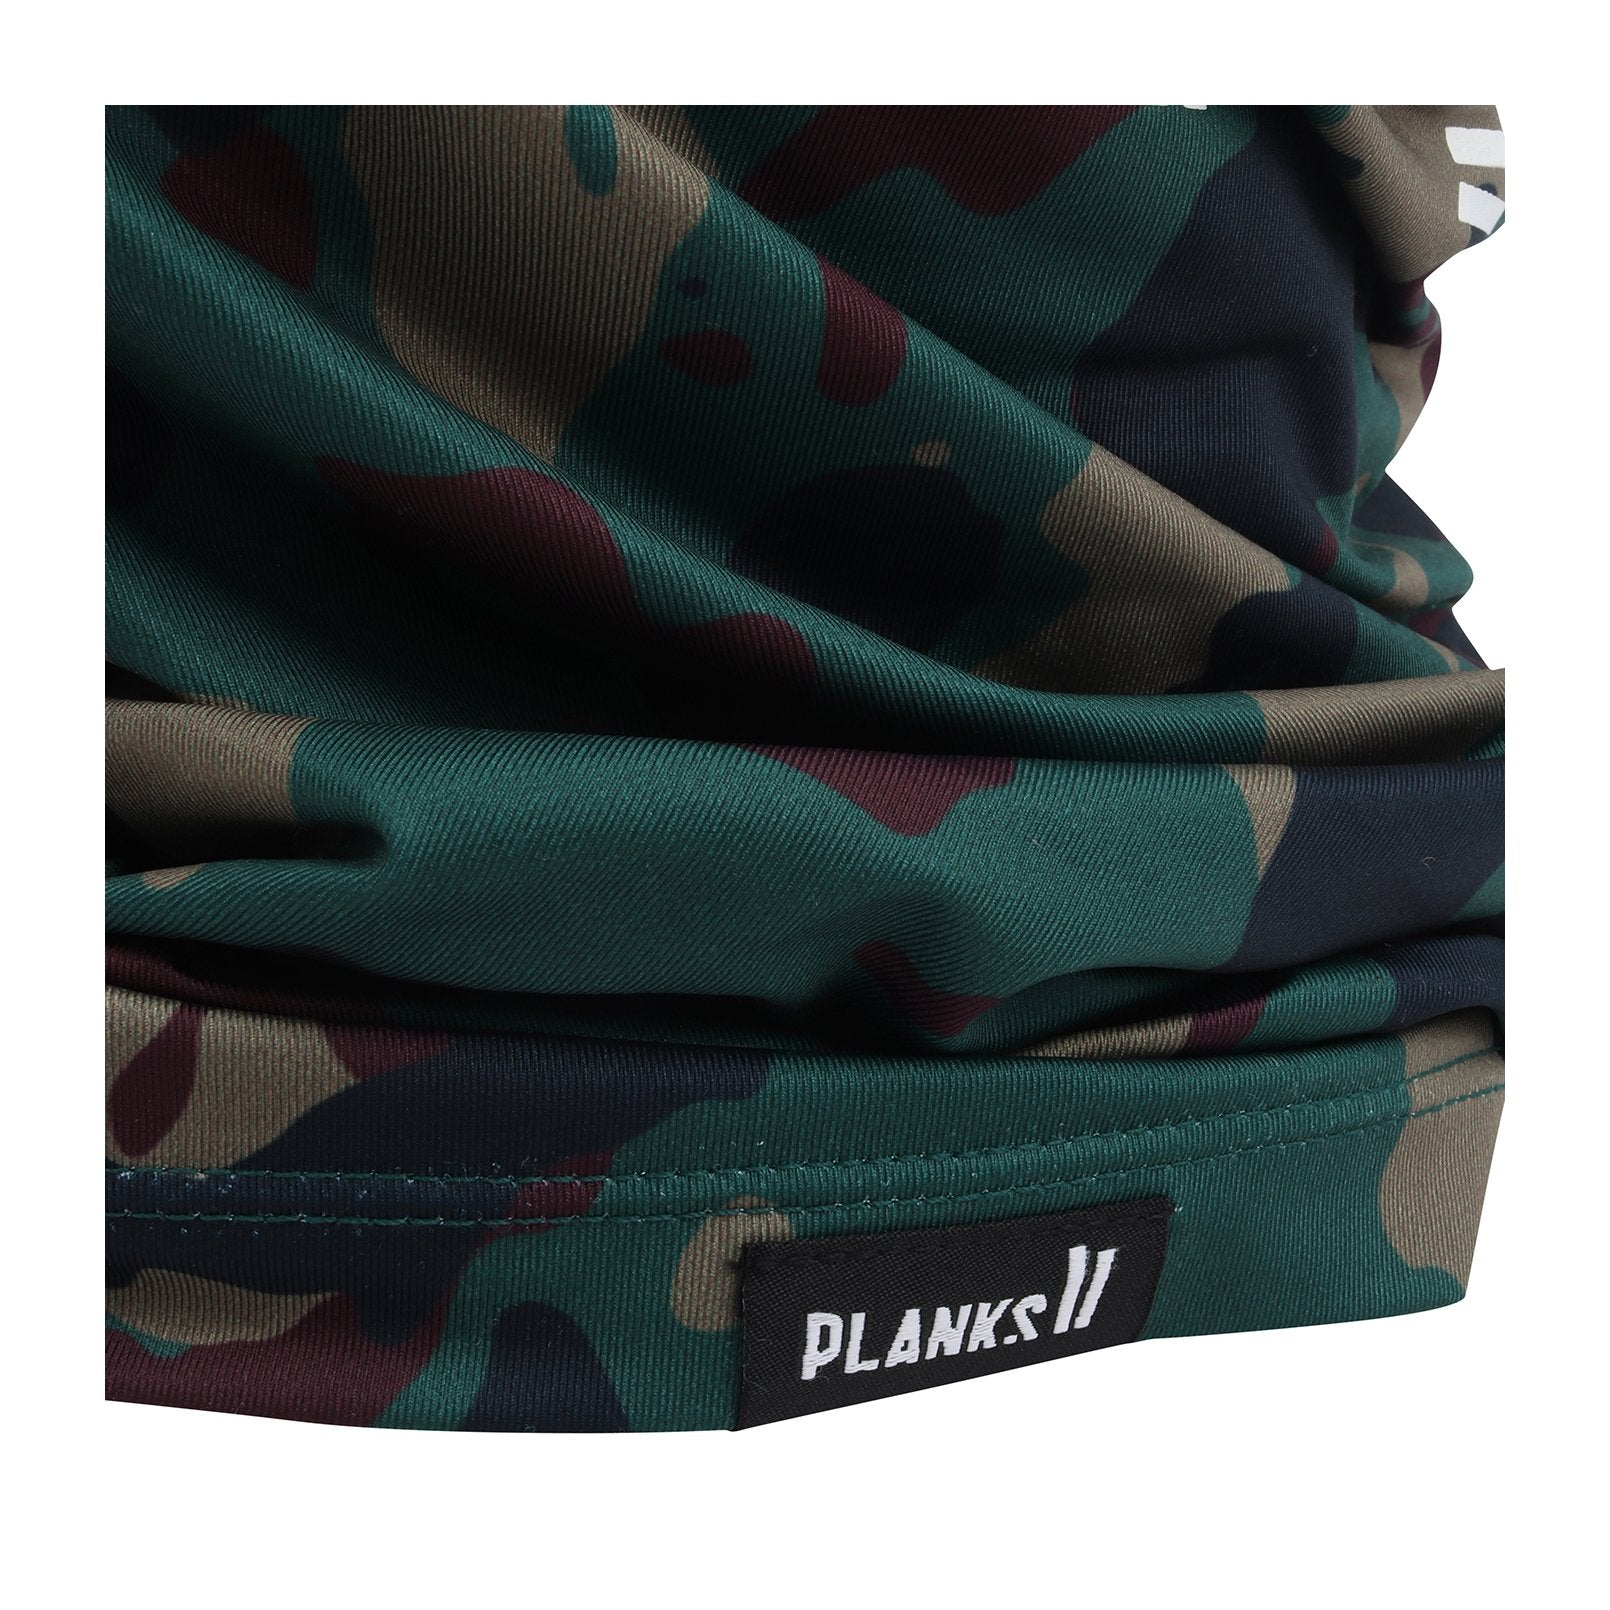 Planks Bandit Necktube | Planks Clothing